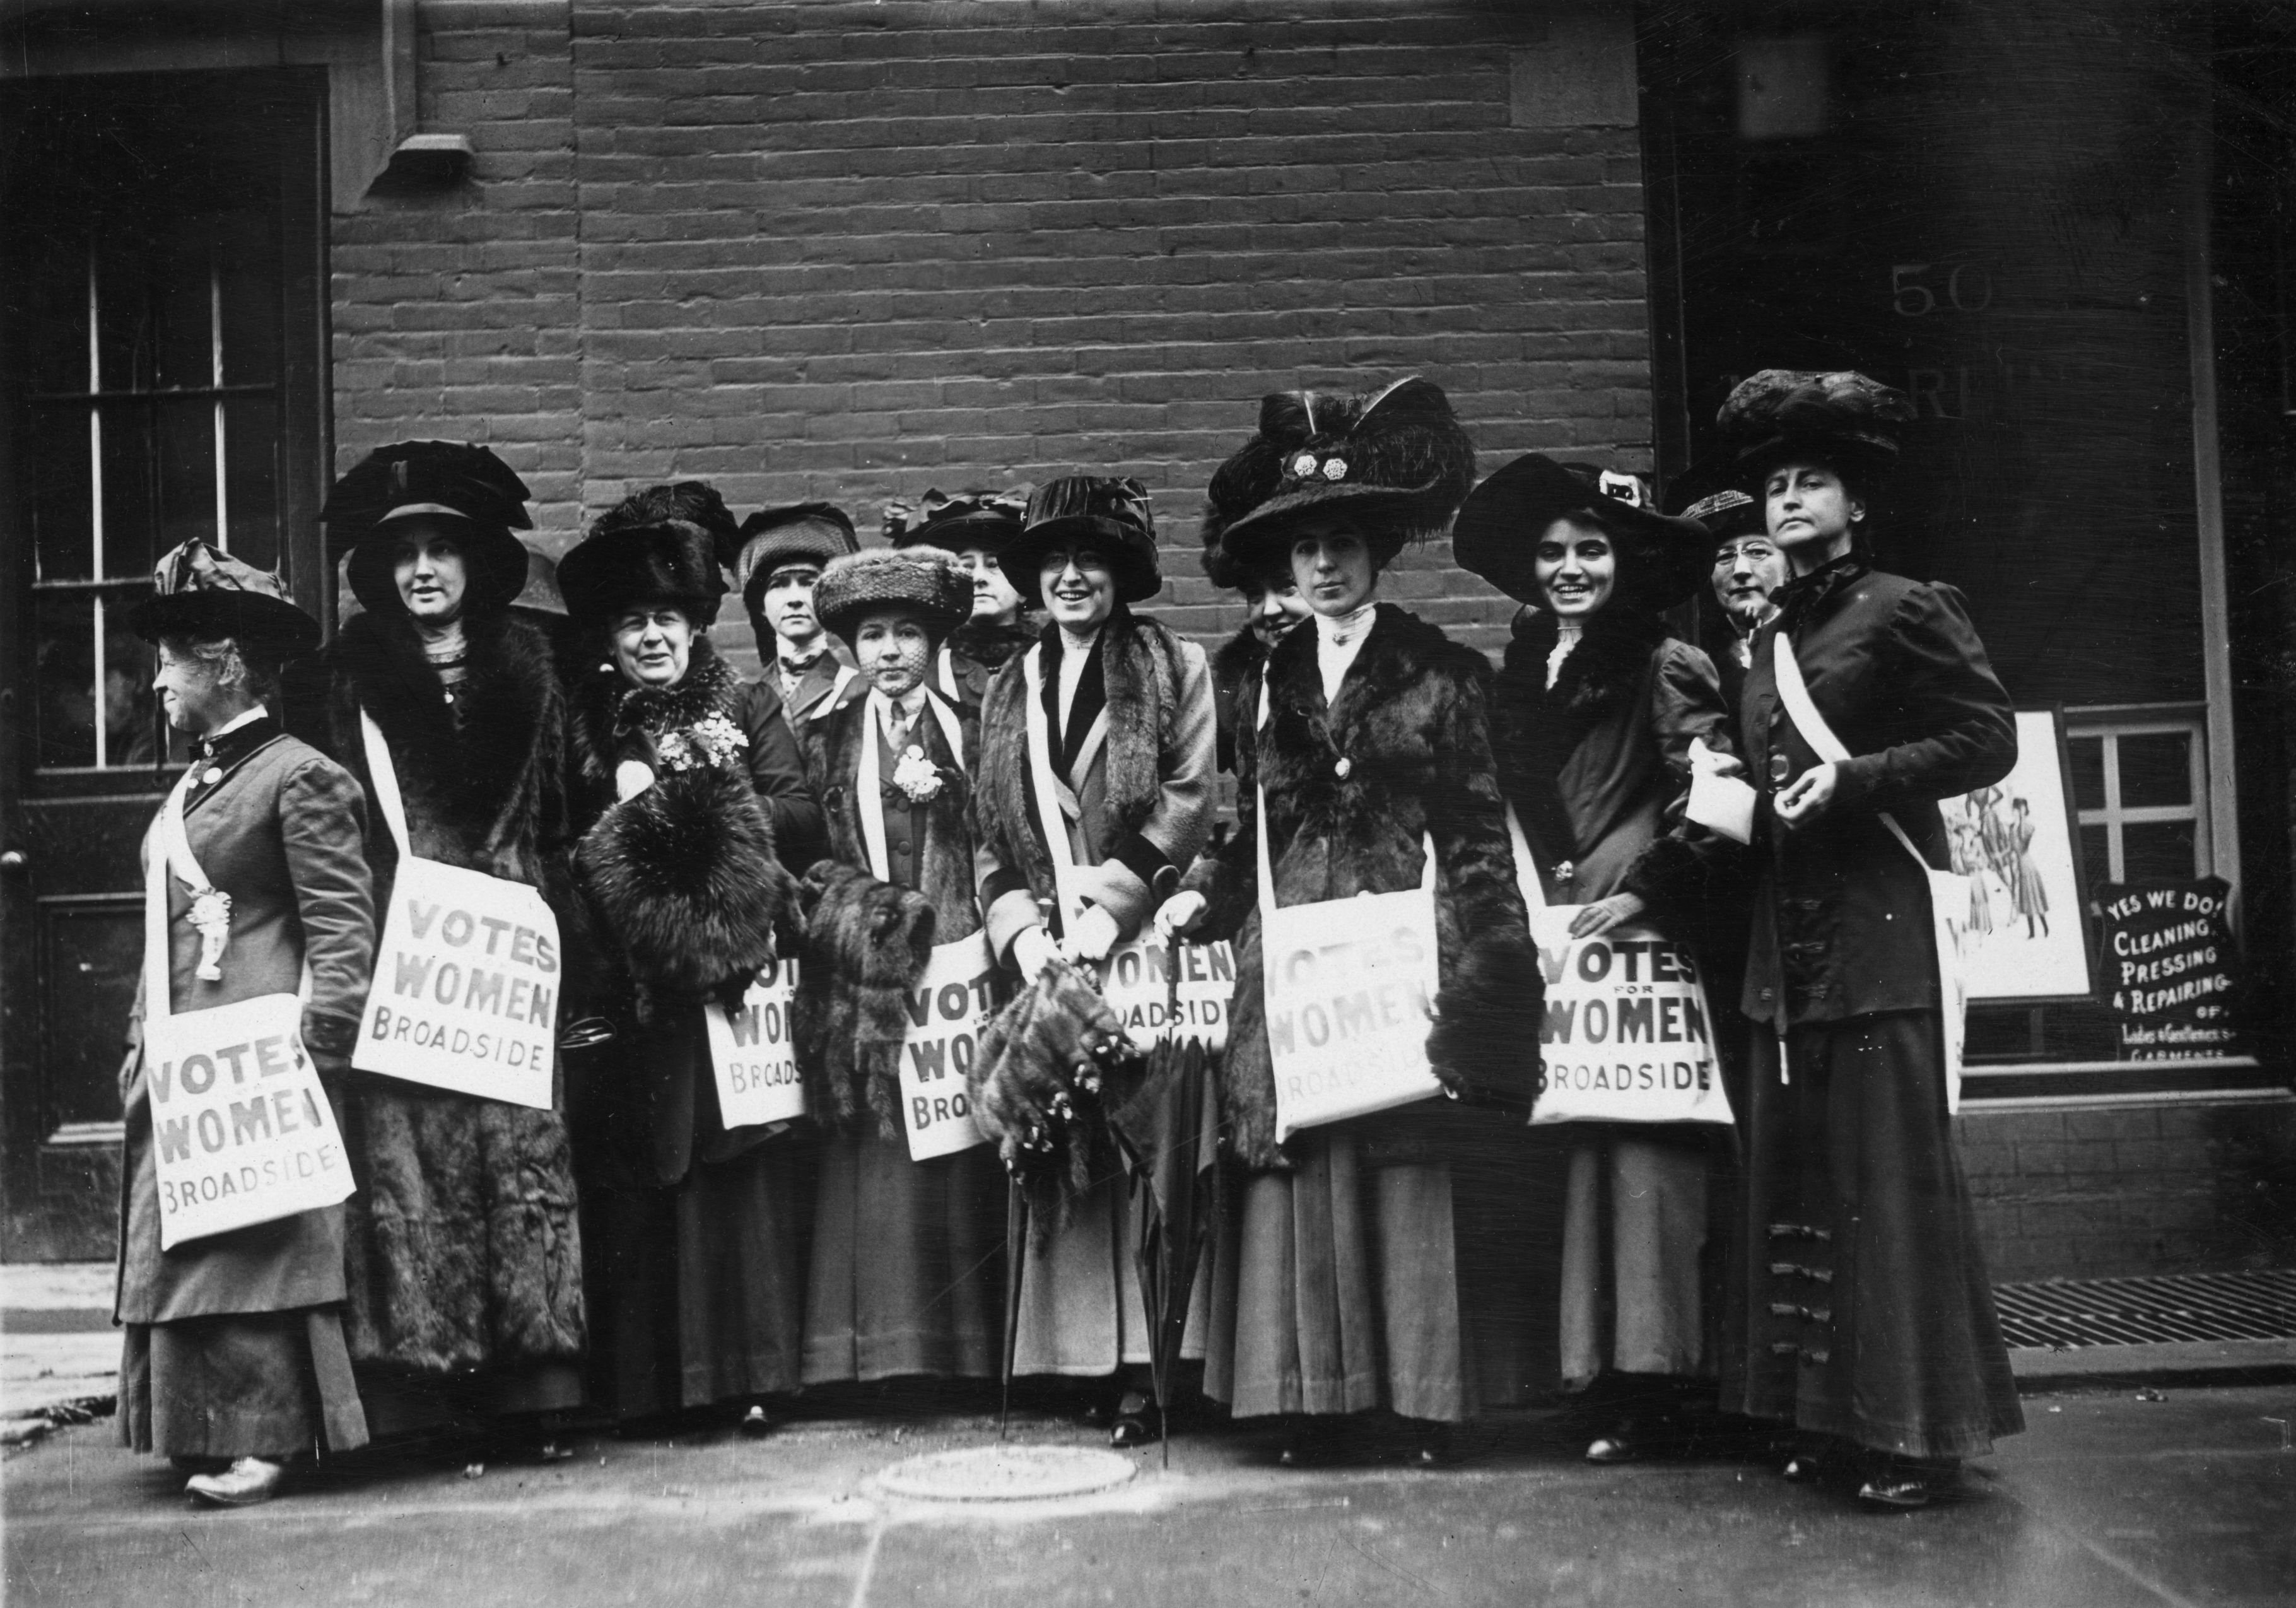 Supporters of women's suffrage, in New York, 1913.